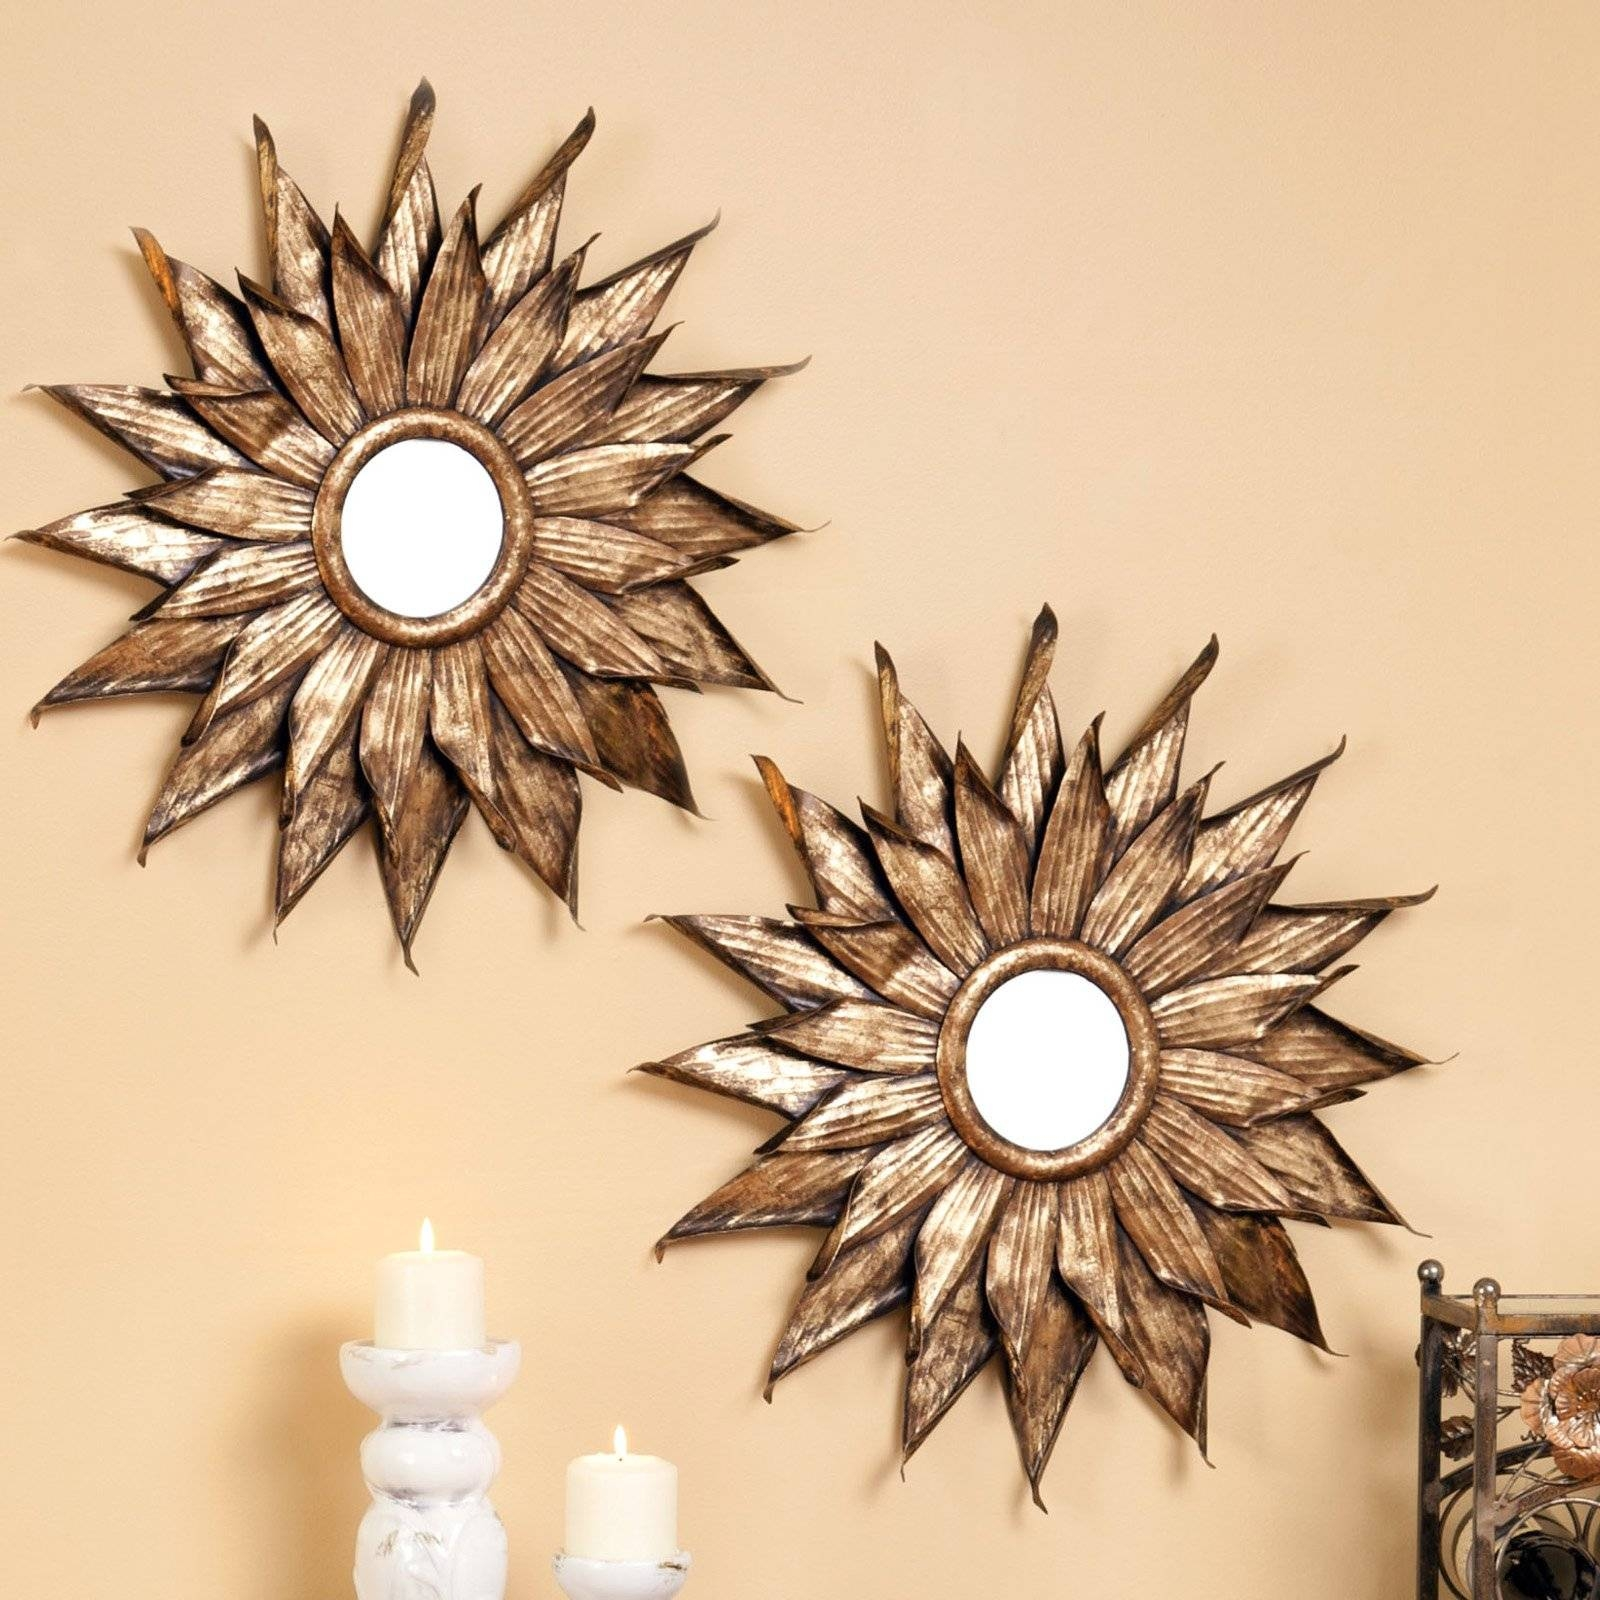 Decorative Wall Mirrors Ideas | Jeffsbakery Basement & Mattress Pertaining To Decorative Mirrors (View 5 of 15)